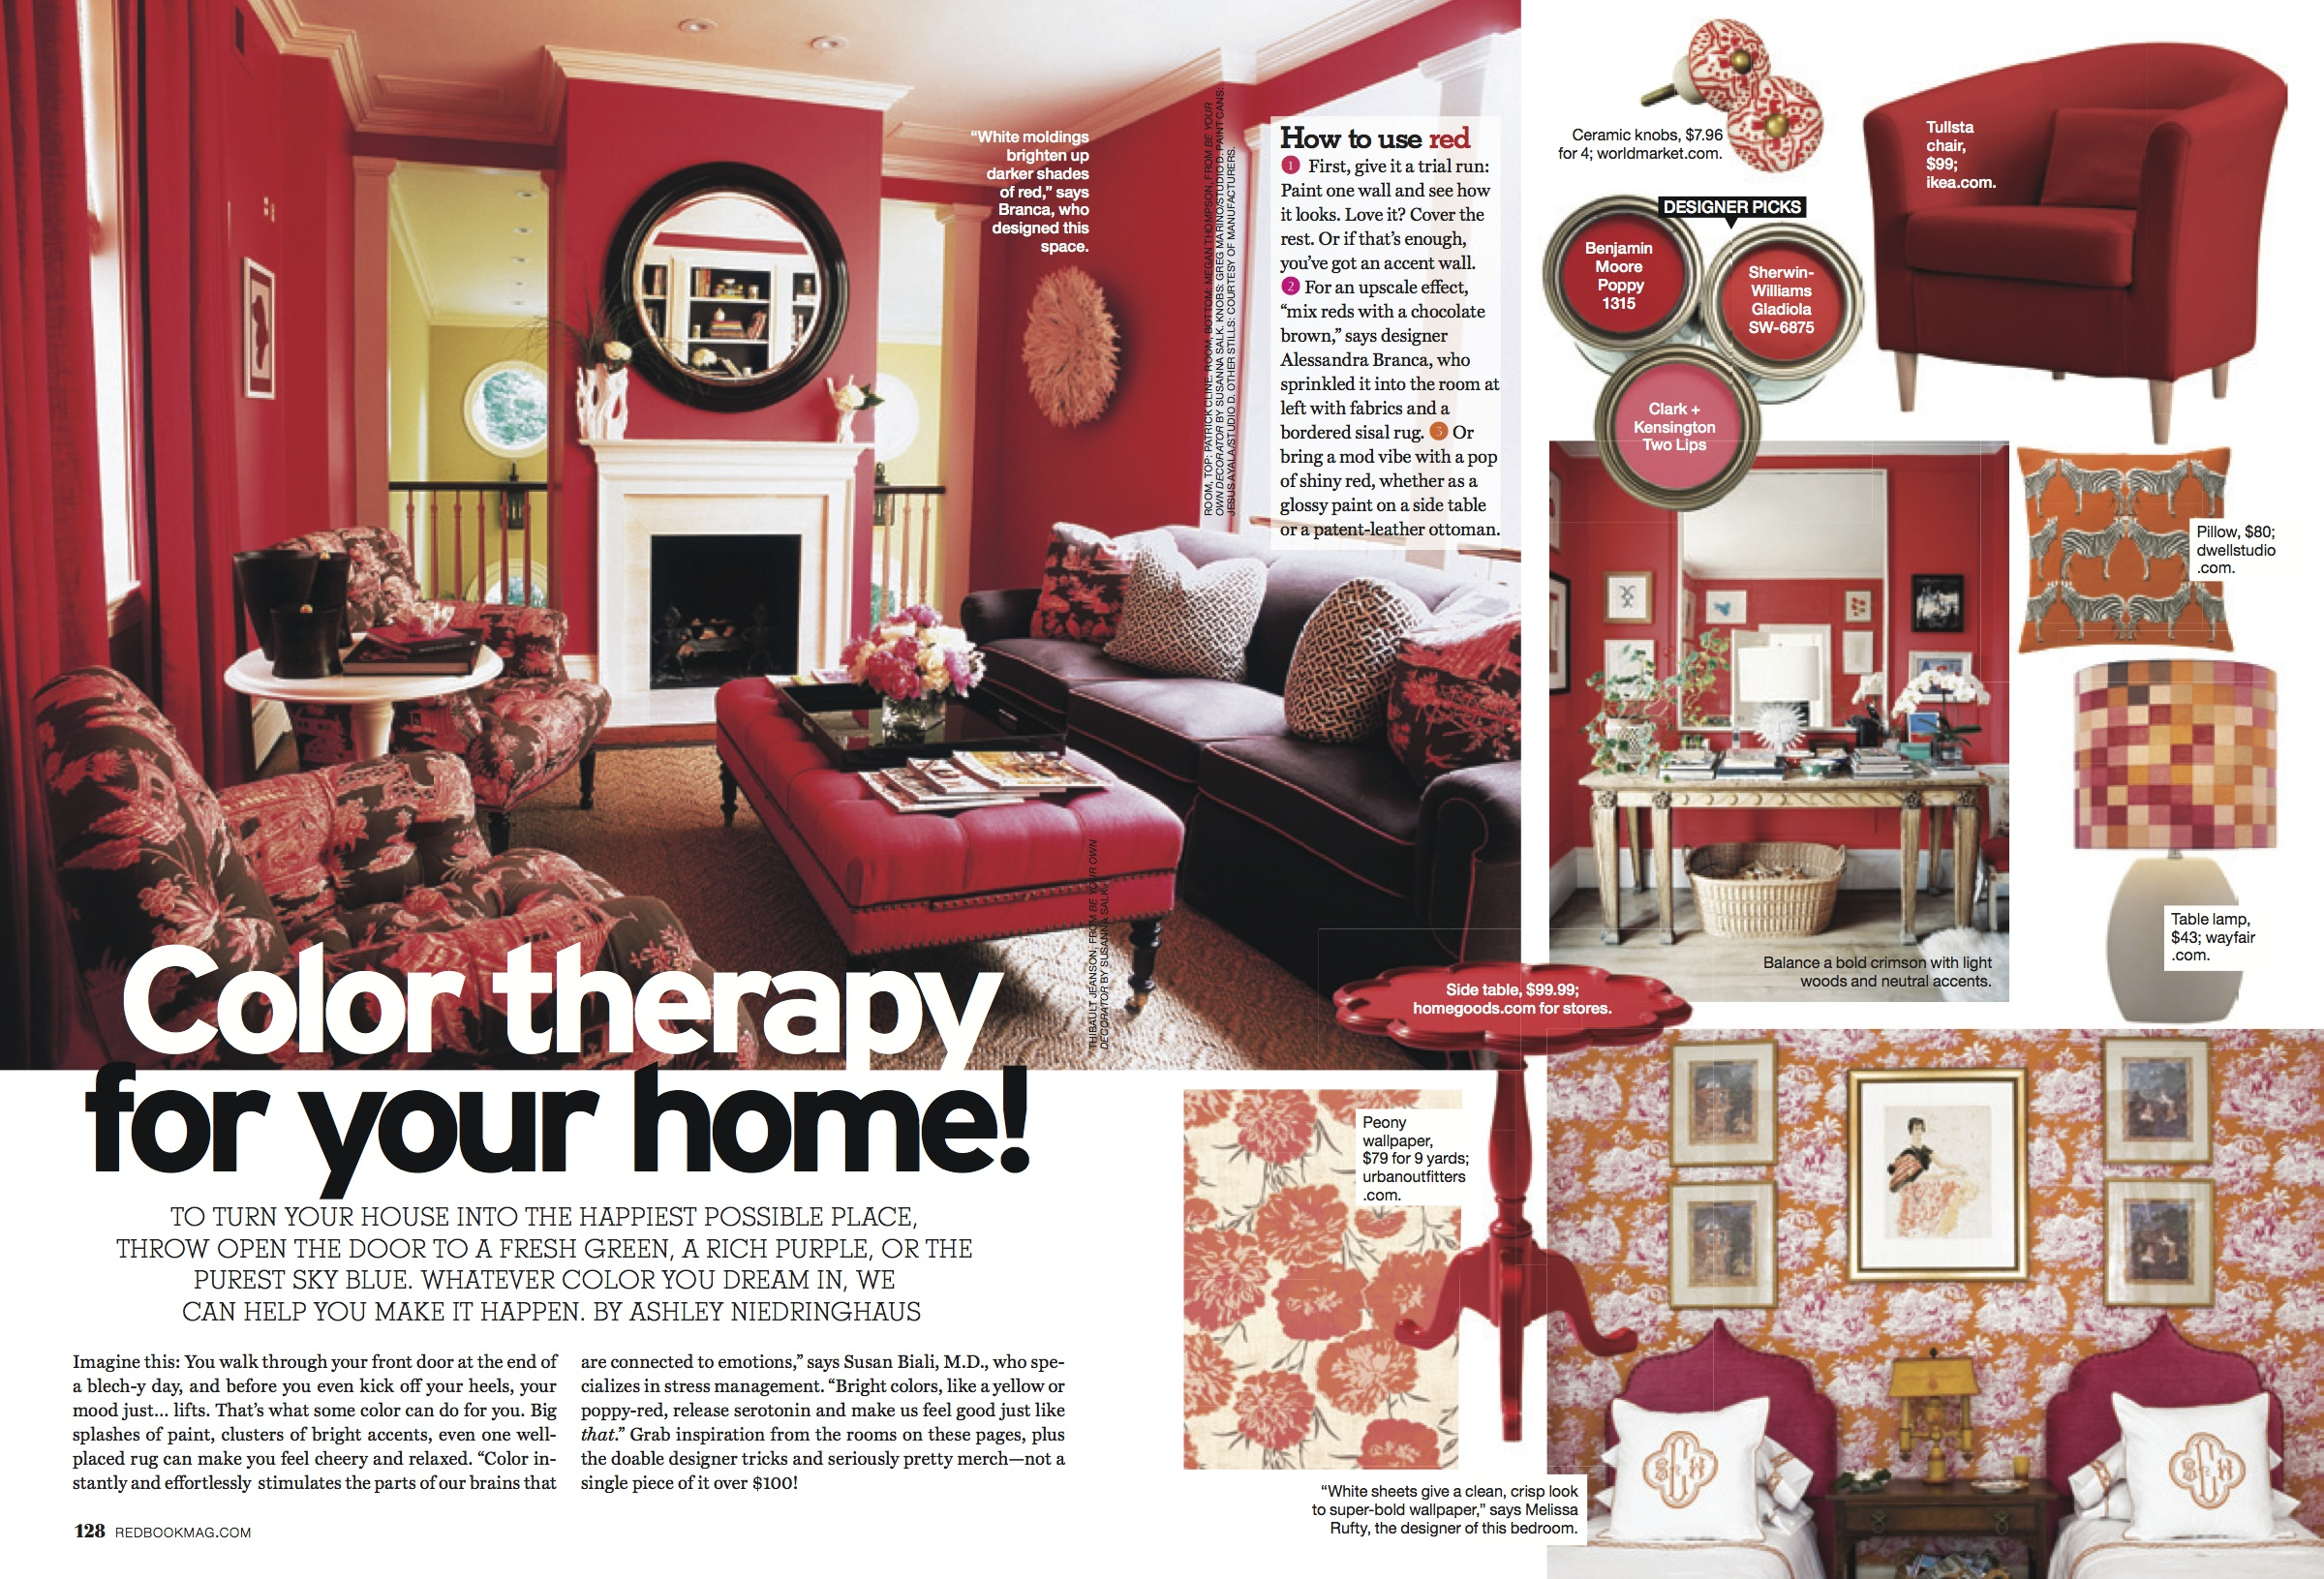 REDBOOK # July 2012